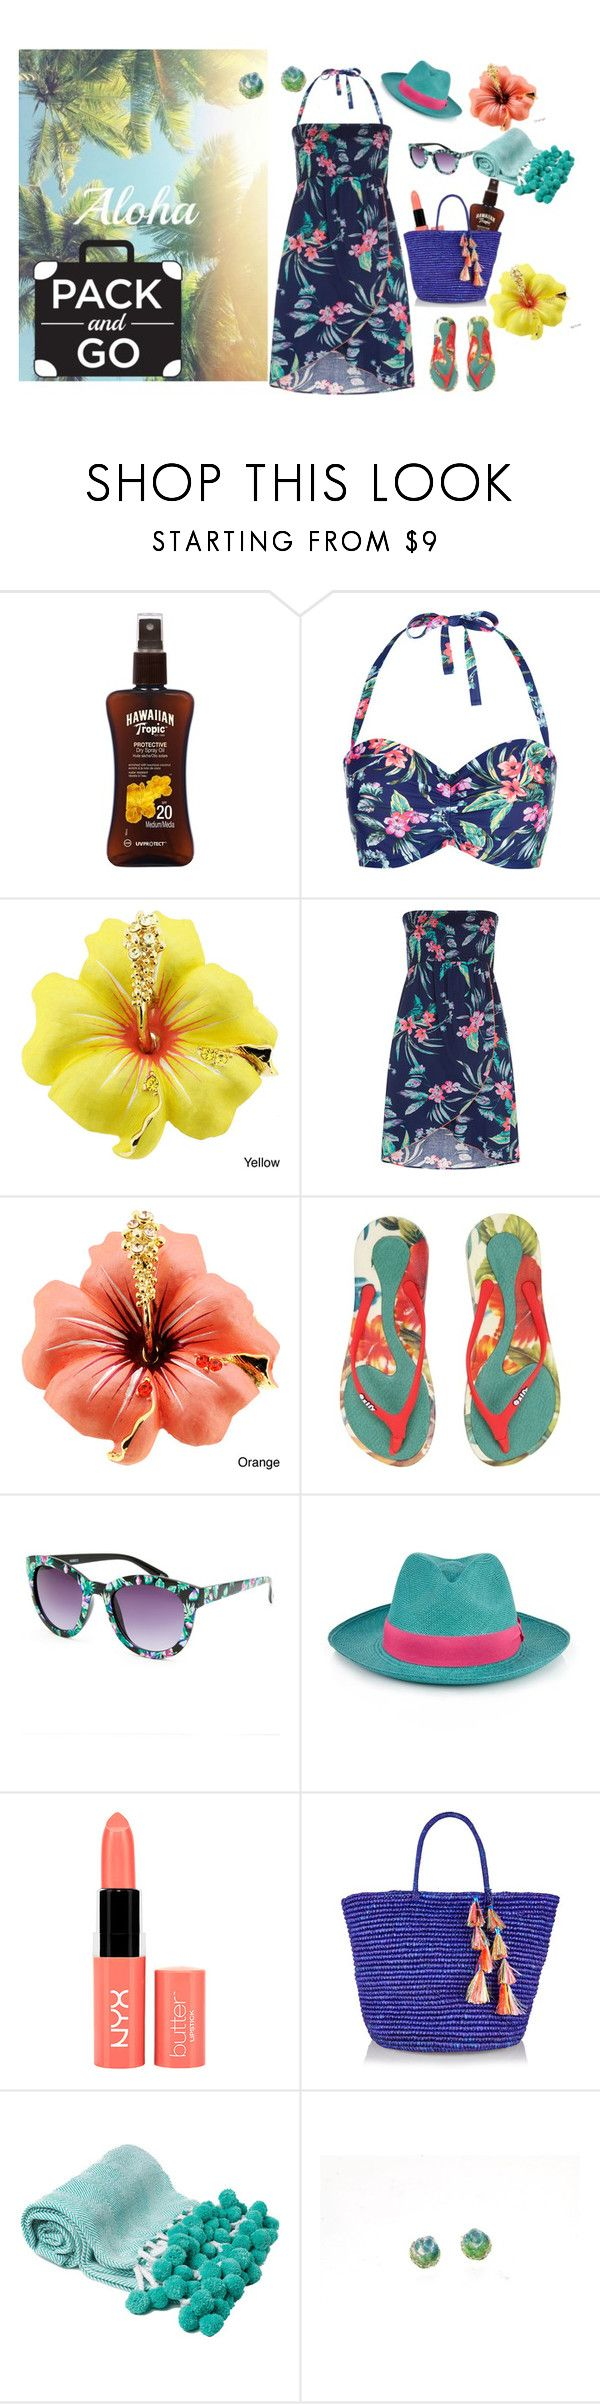 """Pack and Go: Hawaii"" by giampourasjewel ❤ liked on Polyvore featuring Lipsy, Accessorize, Monsoon, Ozify, Full Tilt, Prymal, NYX, Sensi Studio and Packandgo"